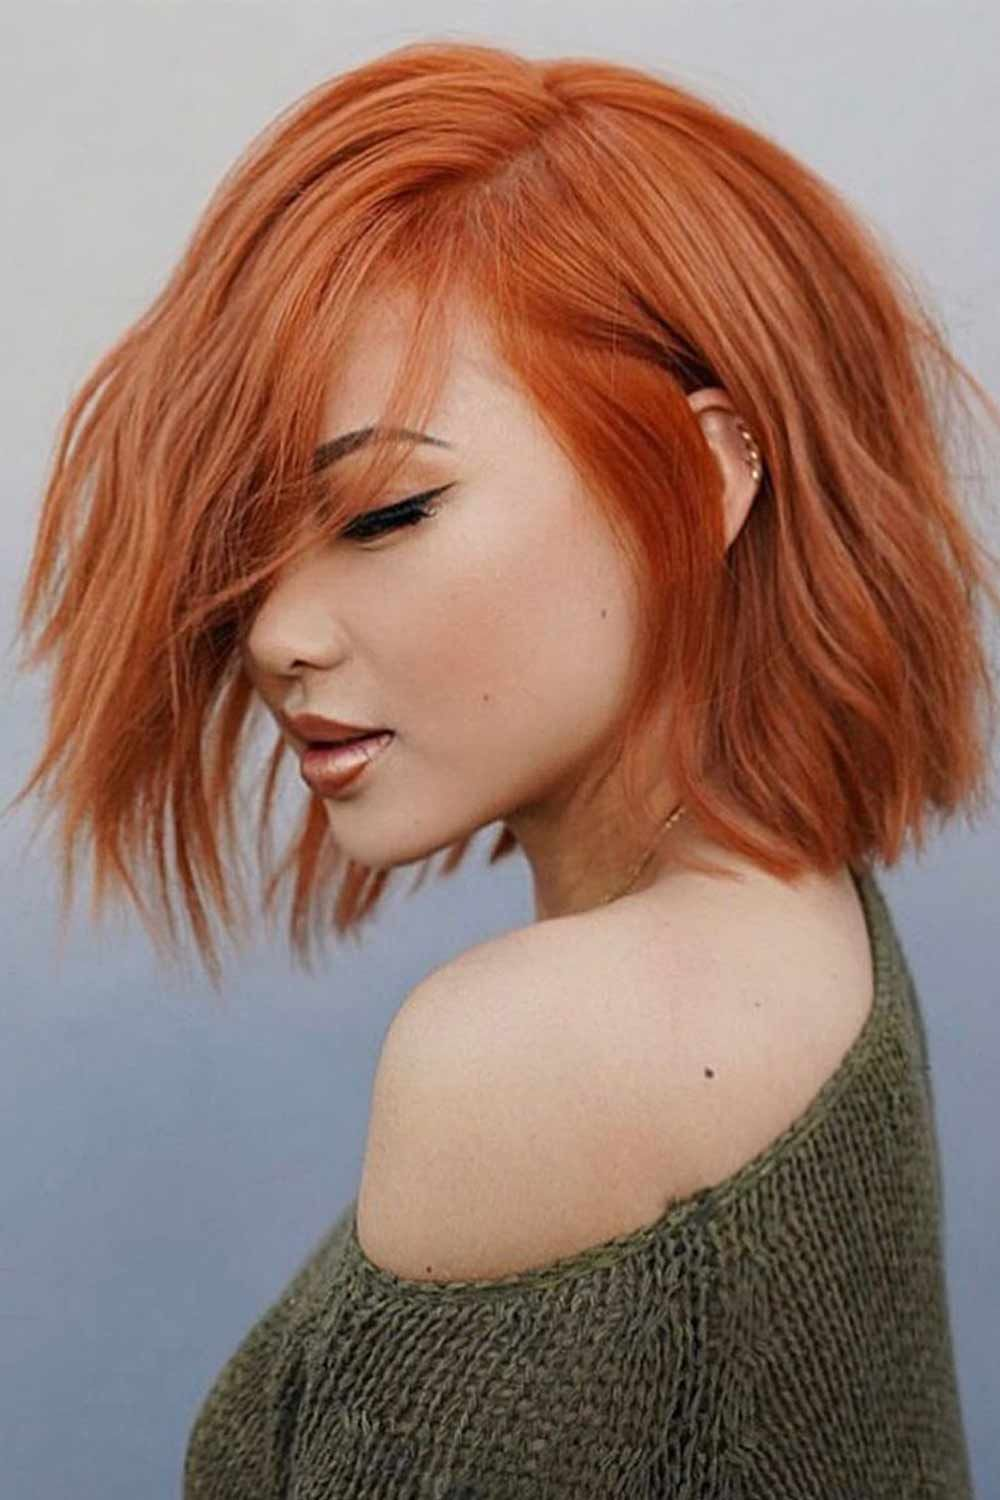 Shoulder Length Haircuts You Will Be Asking For In 2020 Glaminati Com Hair Styles Short Hair Styles Bob Hairstyles